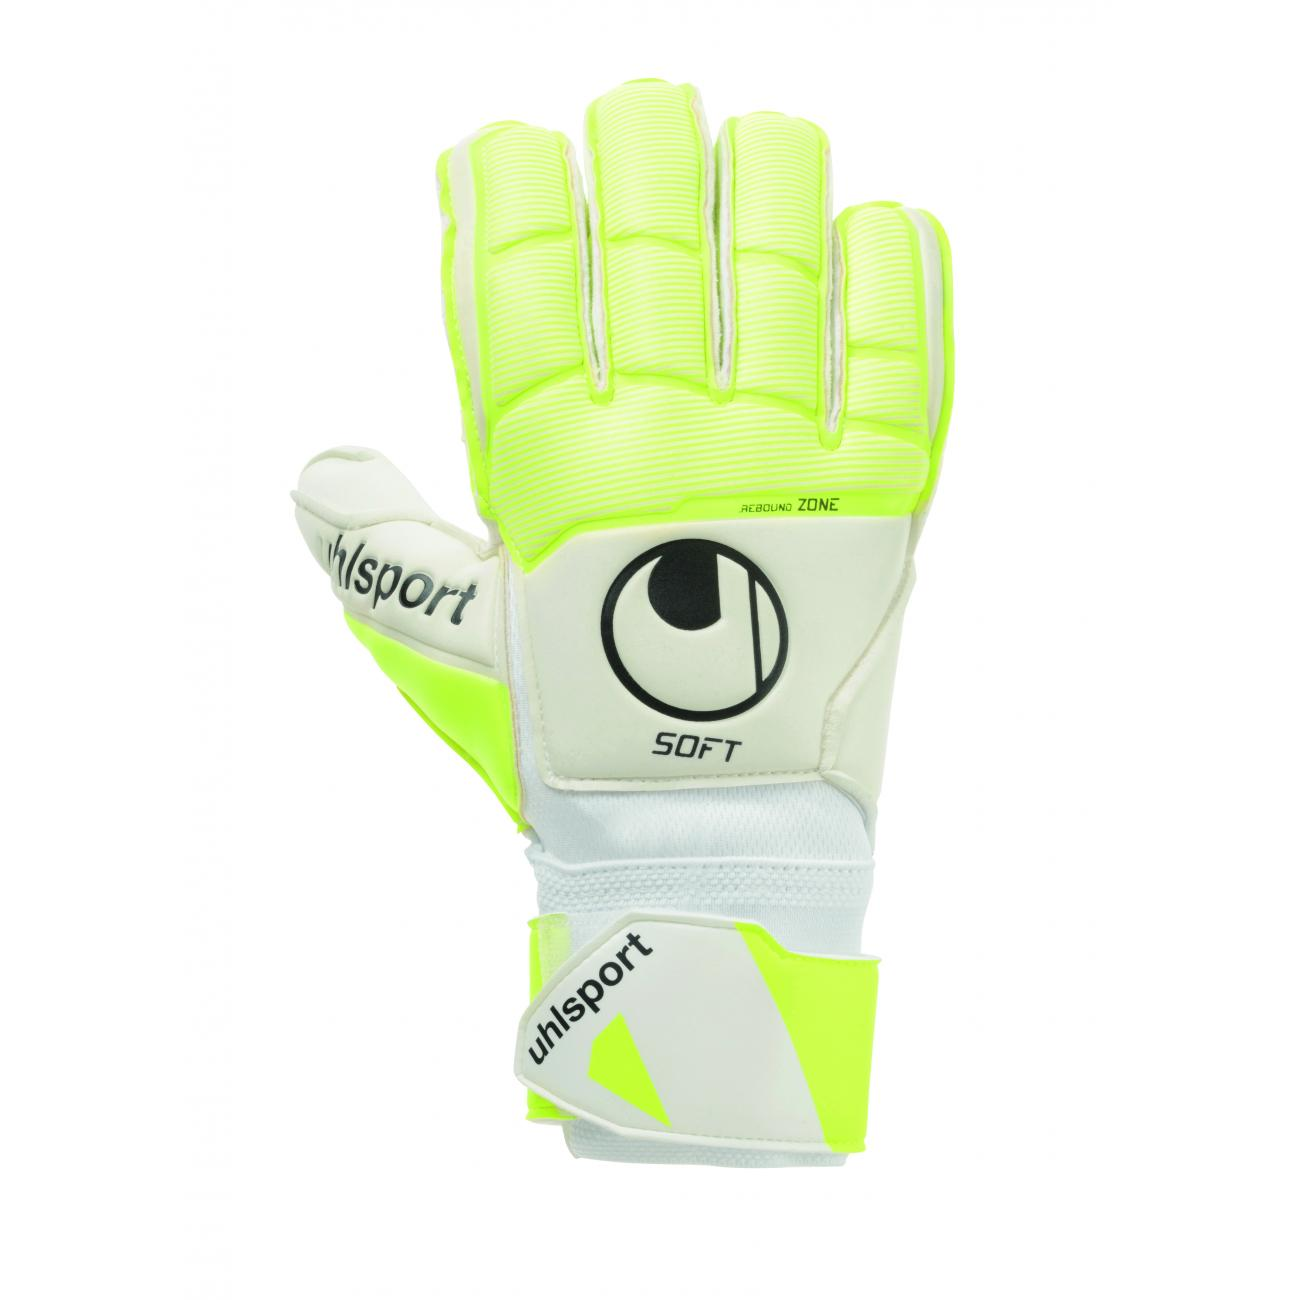 Uhlsport Pure Alliance soft flex frame